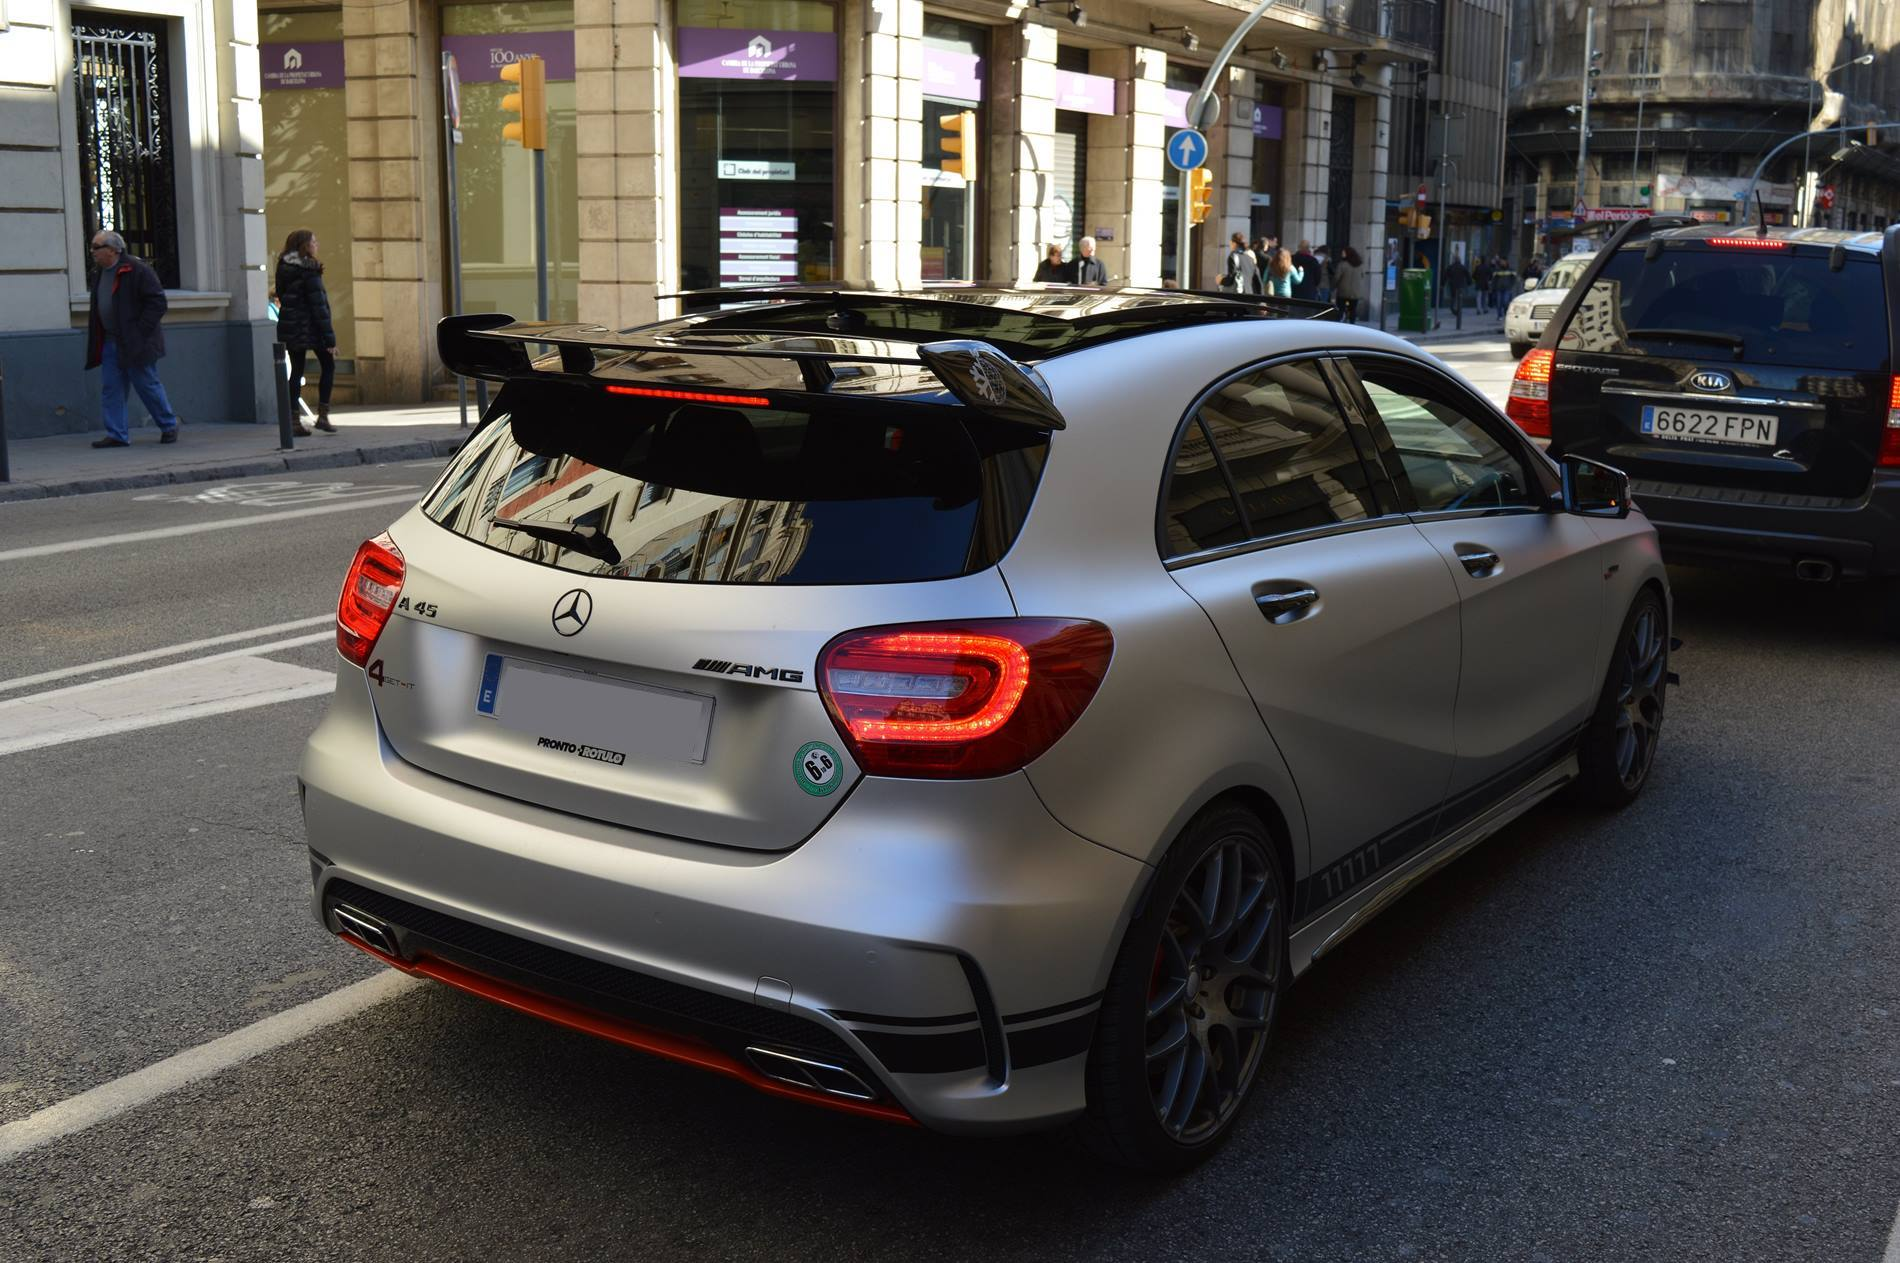 Mercedes benz a 45 amg edition 1 supercars all day for Is a mercedes benz a good car